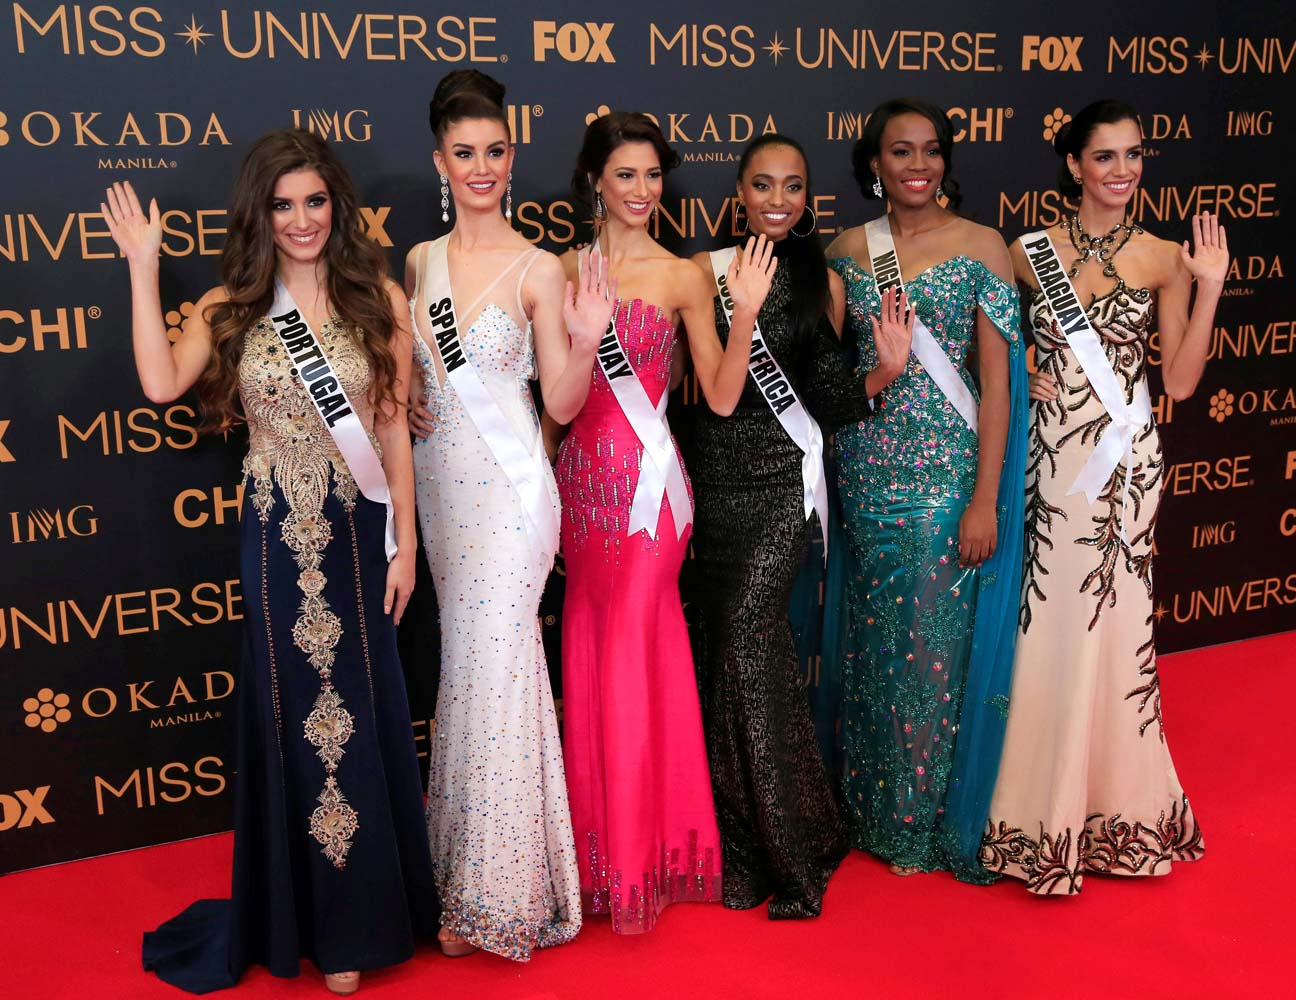 Miss Universe candidates gestures for a picture during a red carpet inside a SMX convention in metro Manila, Philippines January 29, 2017. In Photo from L-R: Miss Portugal Flavia Brito, Miss Spain Noelia Freire, Miss Uruguay Magdalena Cohendet, Miss South Africa Ntandoyenkosi Kunene, Miss Nigeria Unoaku Anyadike and Miss Paraguay Andrea Melgarejo. REUTERS/Romeo Ranoco